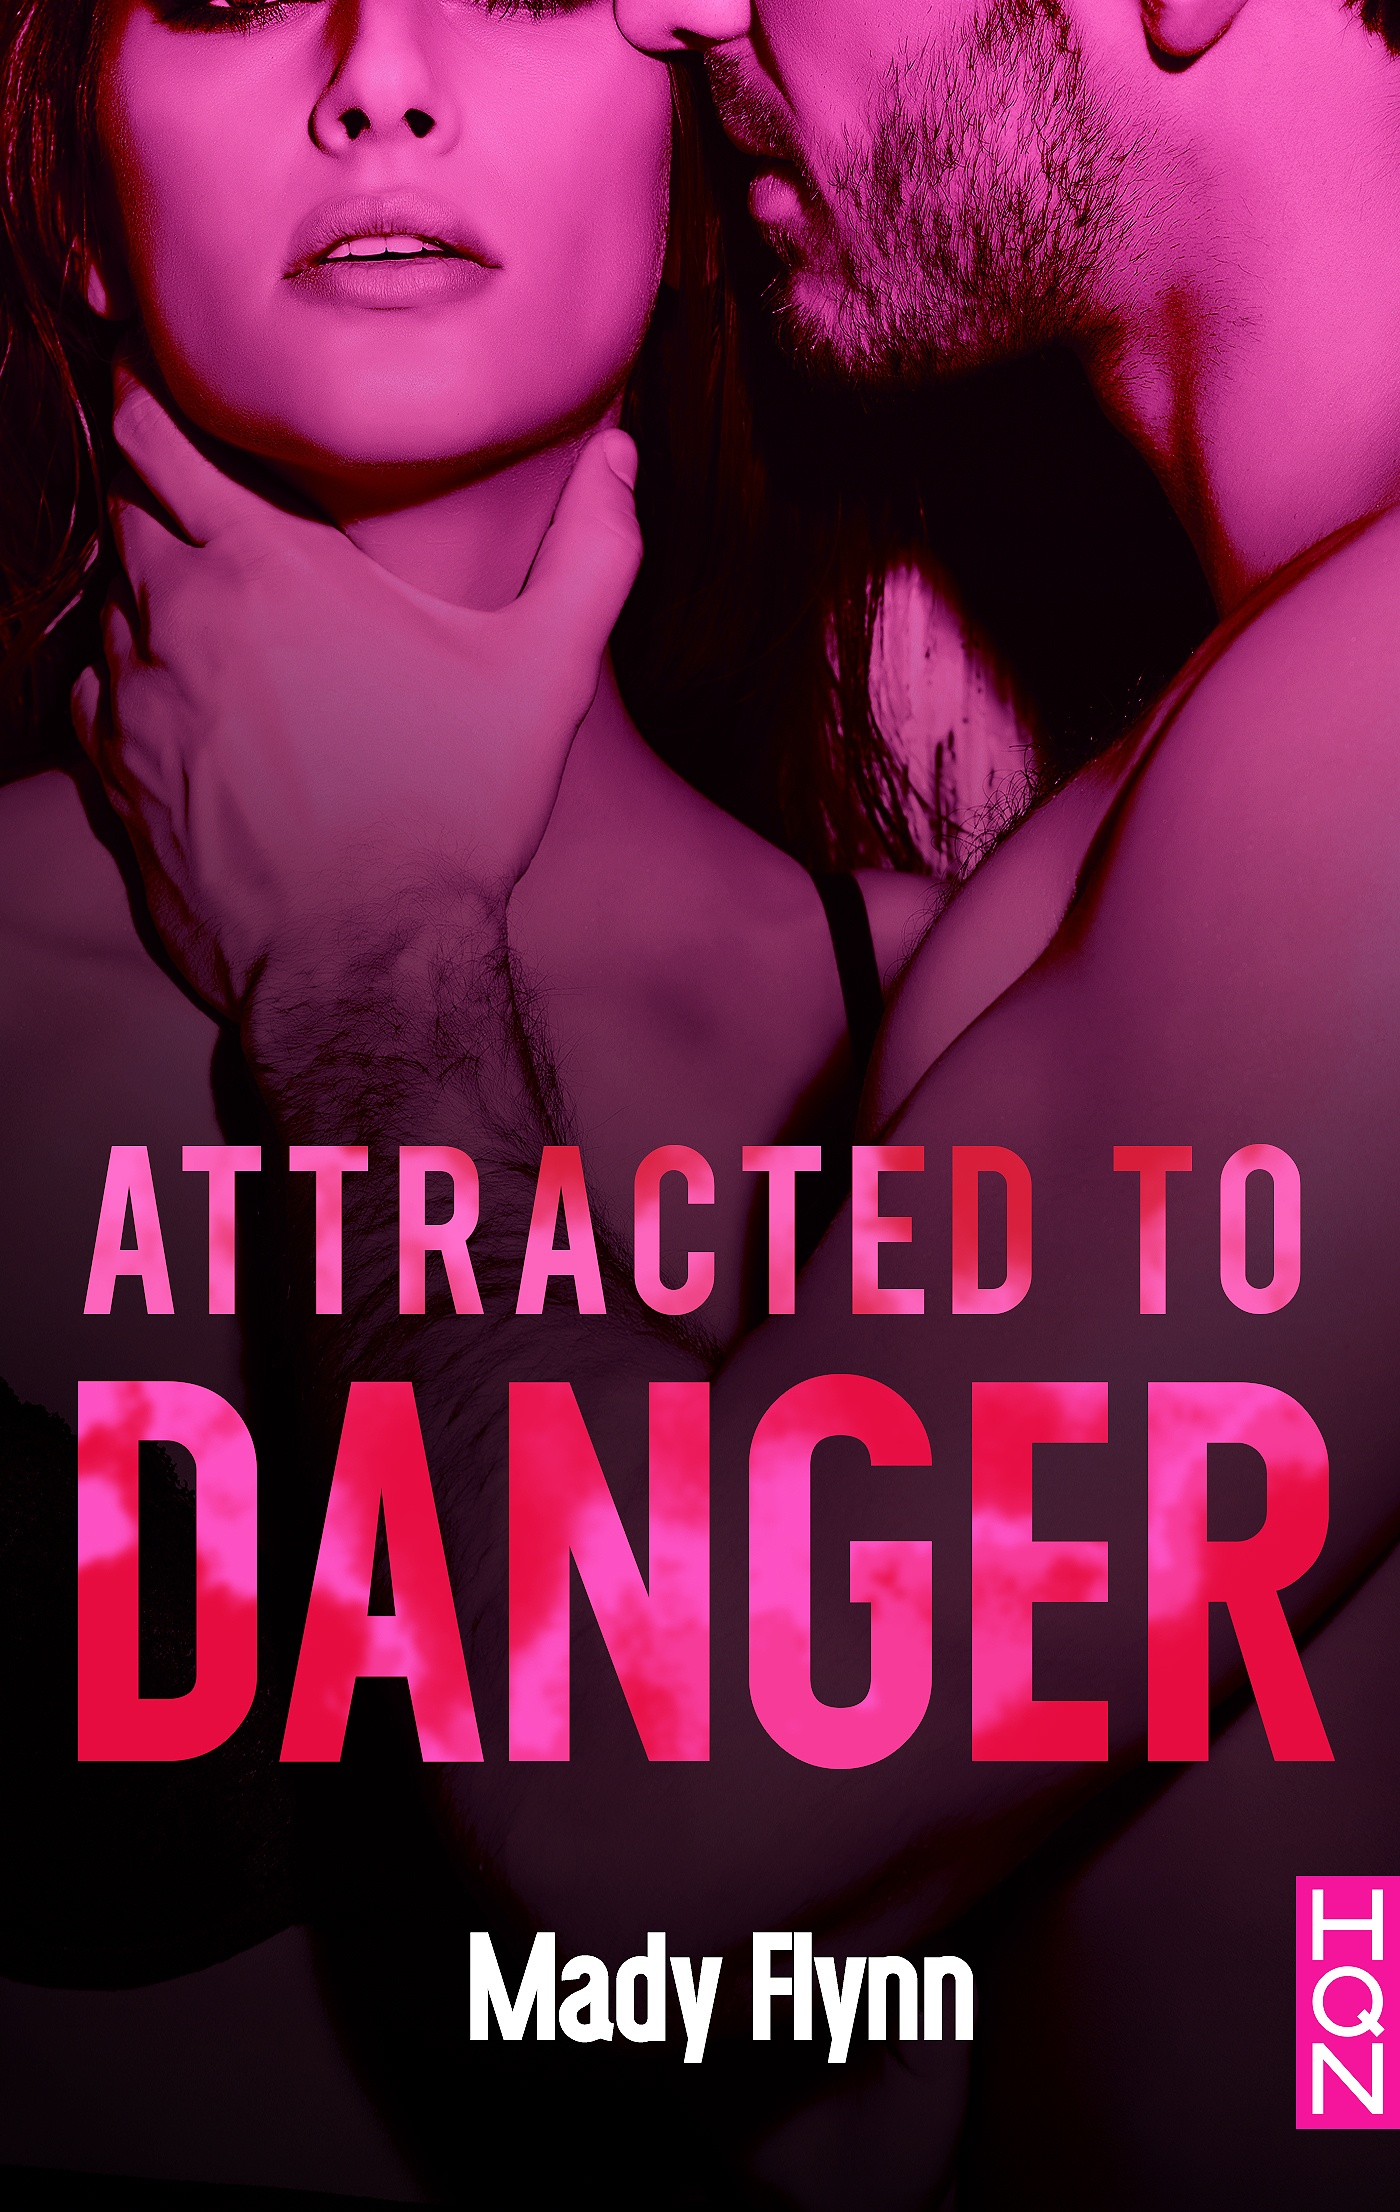 Dangerous love - Tome 1 : Attracted to danger de Mady Flynn 9782280411233